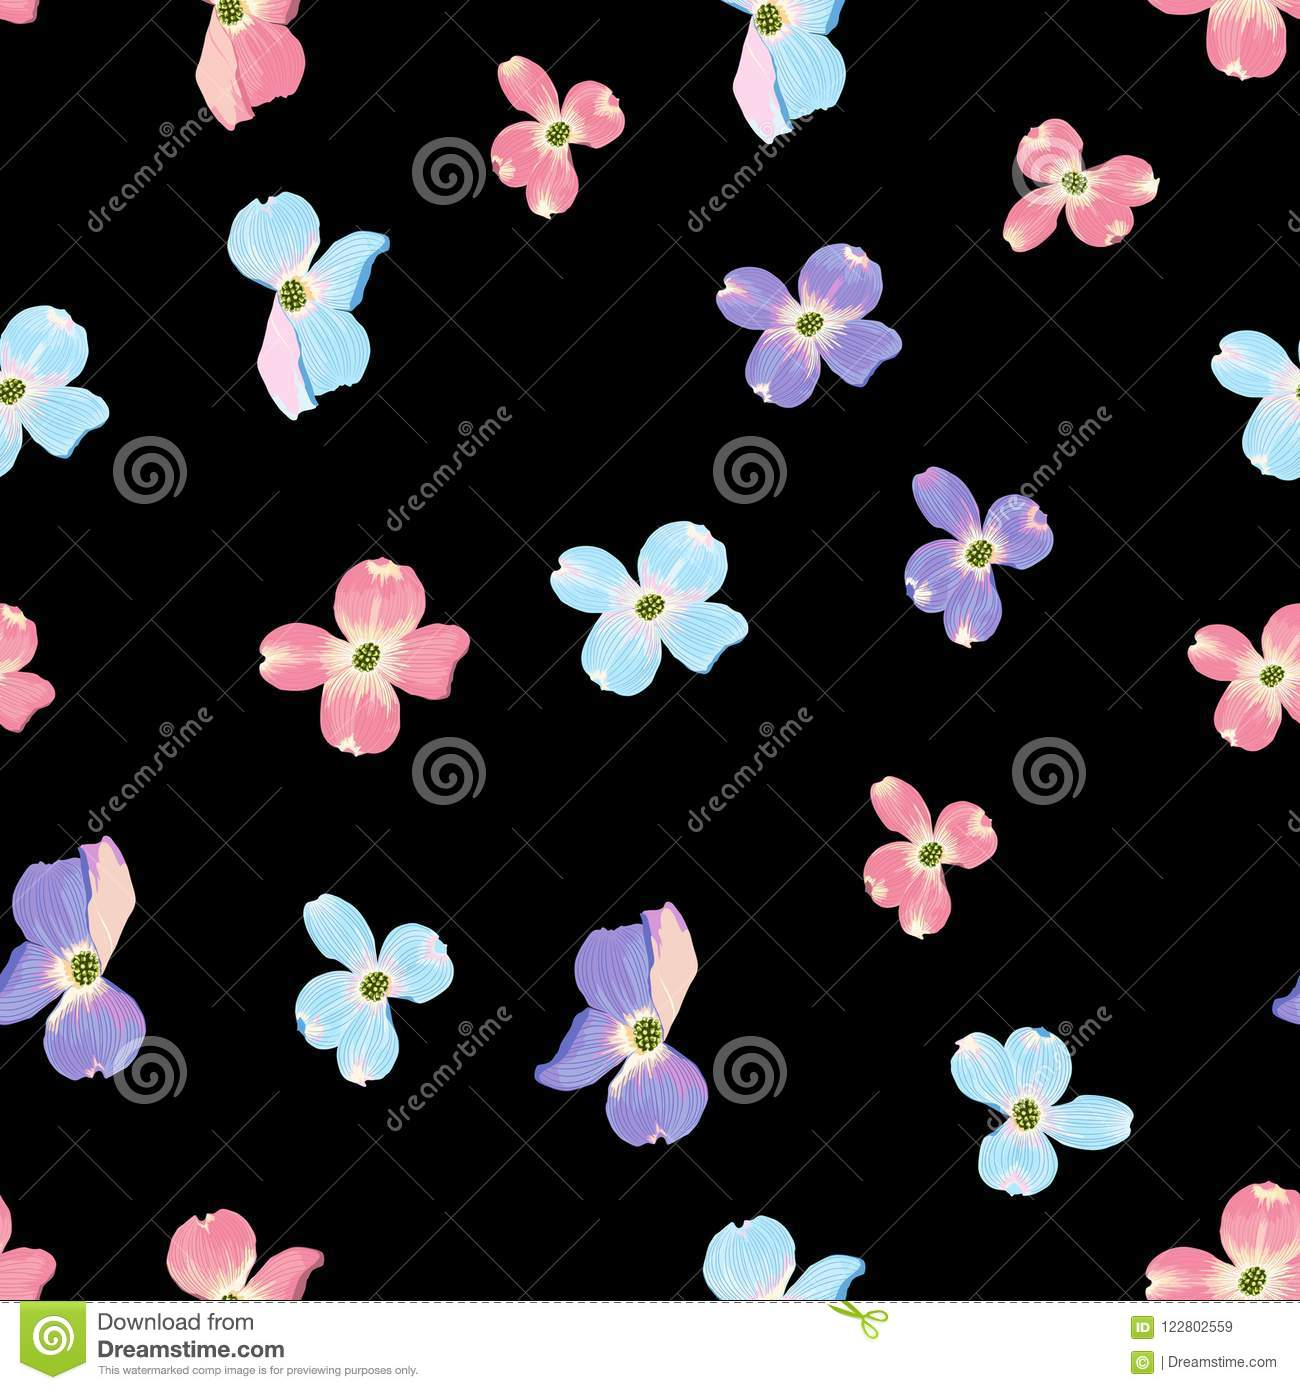 Spring Autumn Violet Blue Pink Flowers Seamless Pattern Watercolor